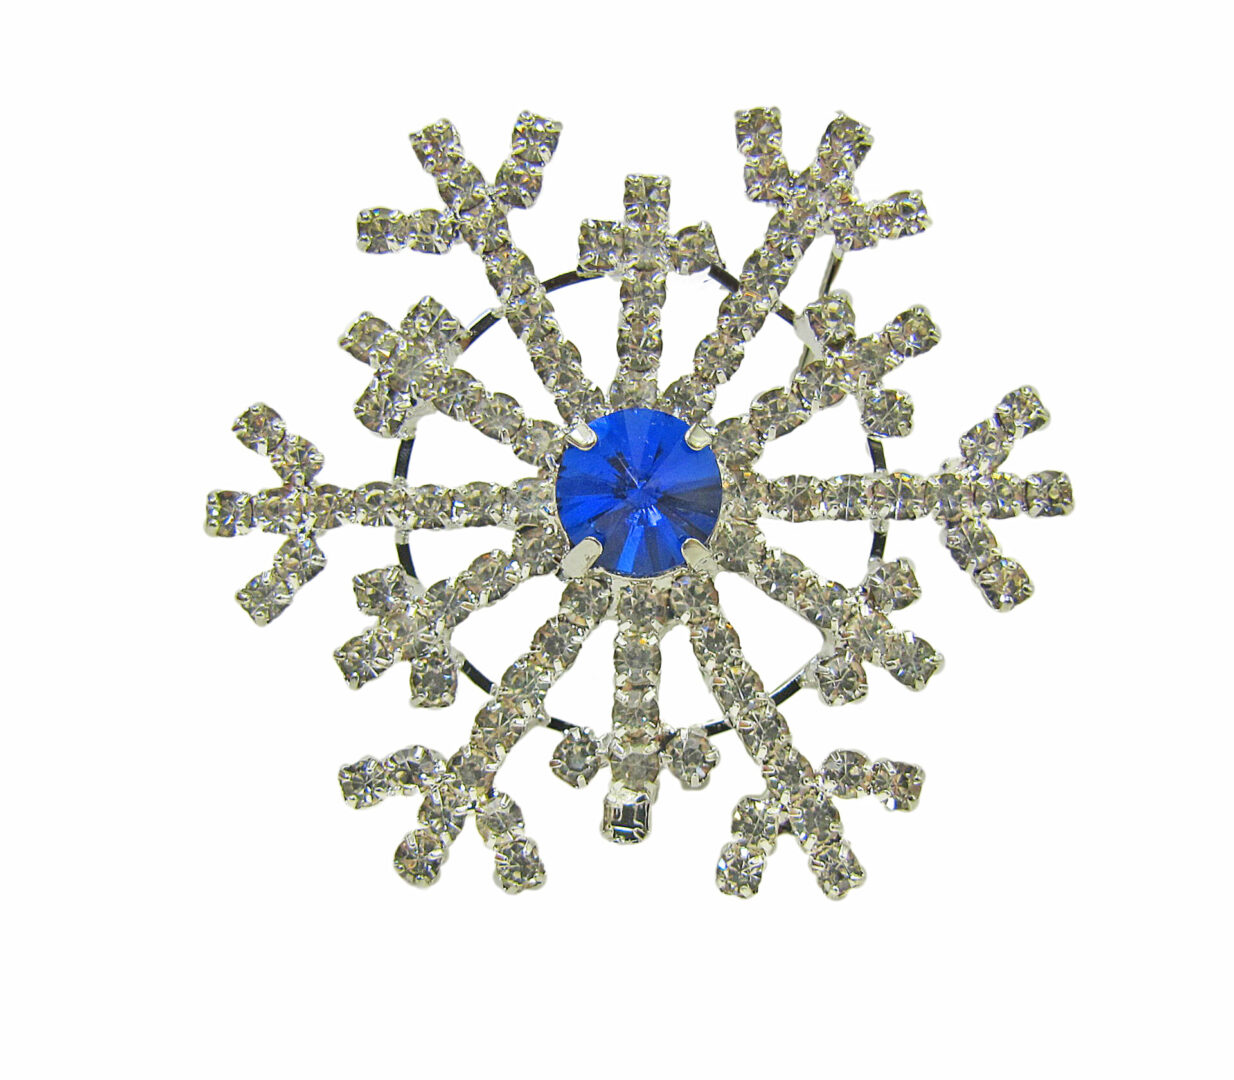 snowflake brooch with large blue center gem